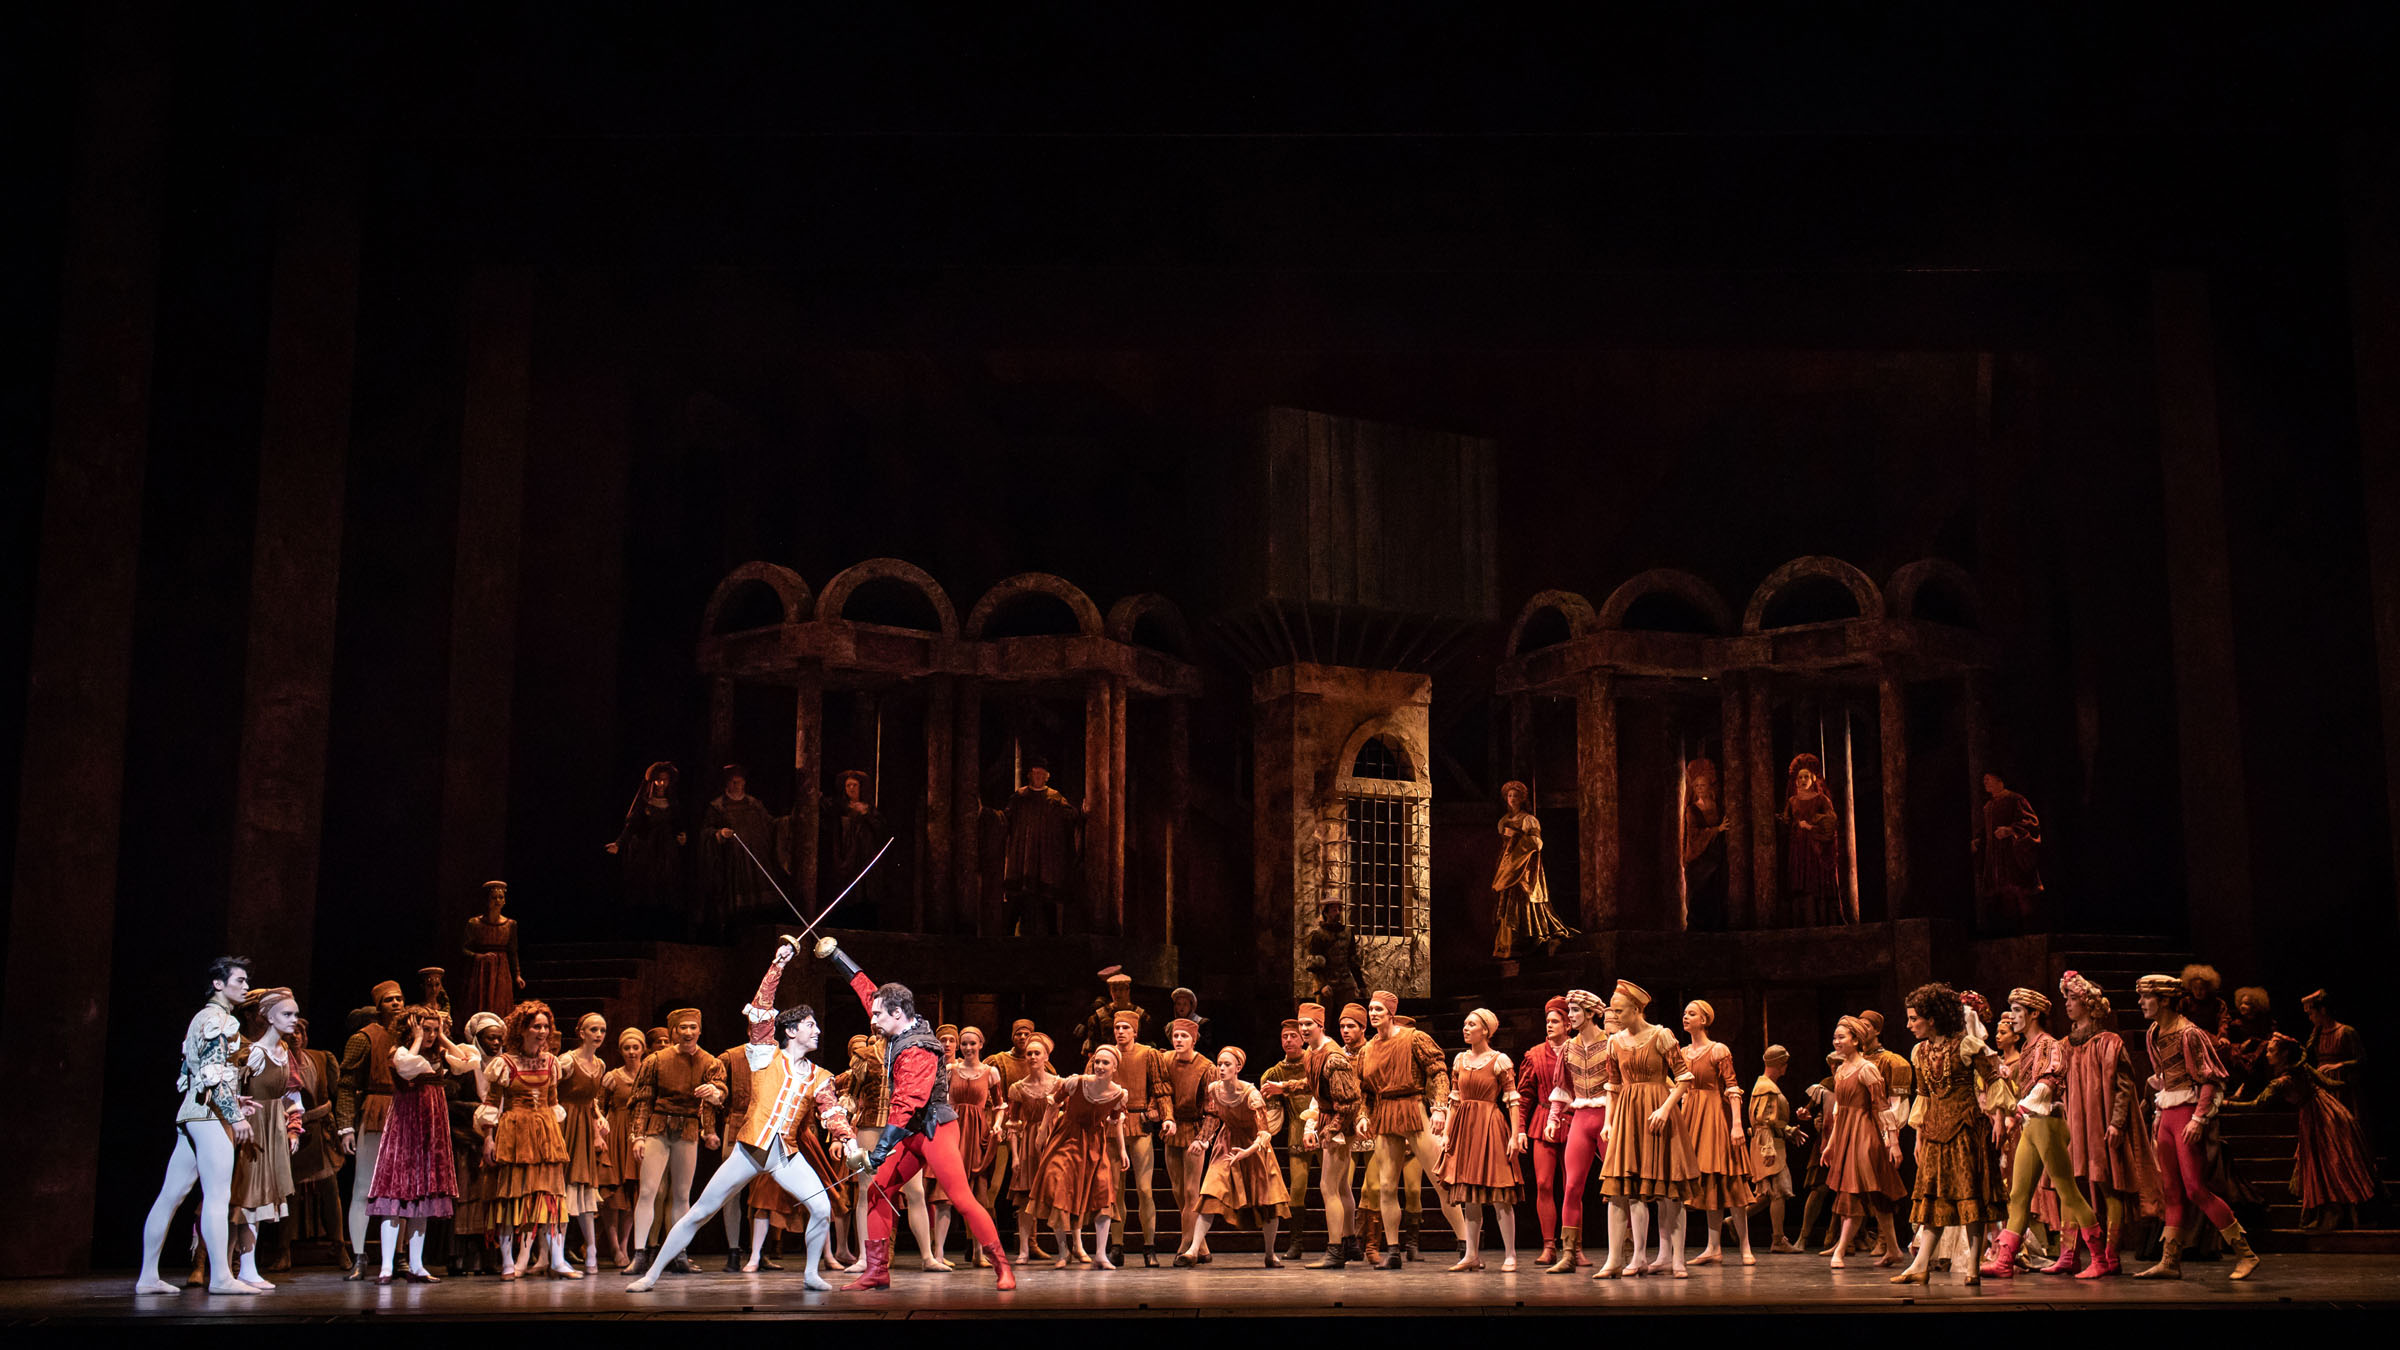 Romeo and Juliet at the Royal Opera House